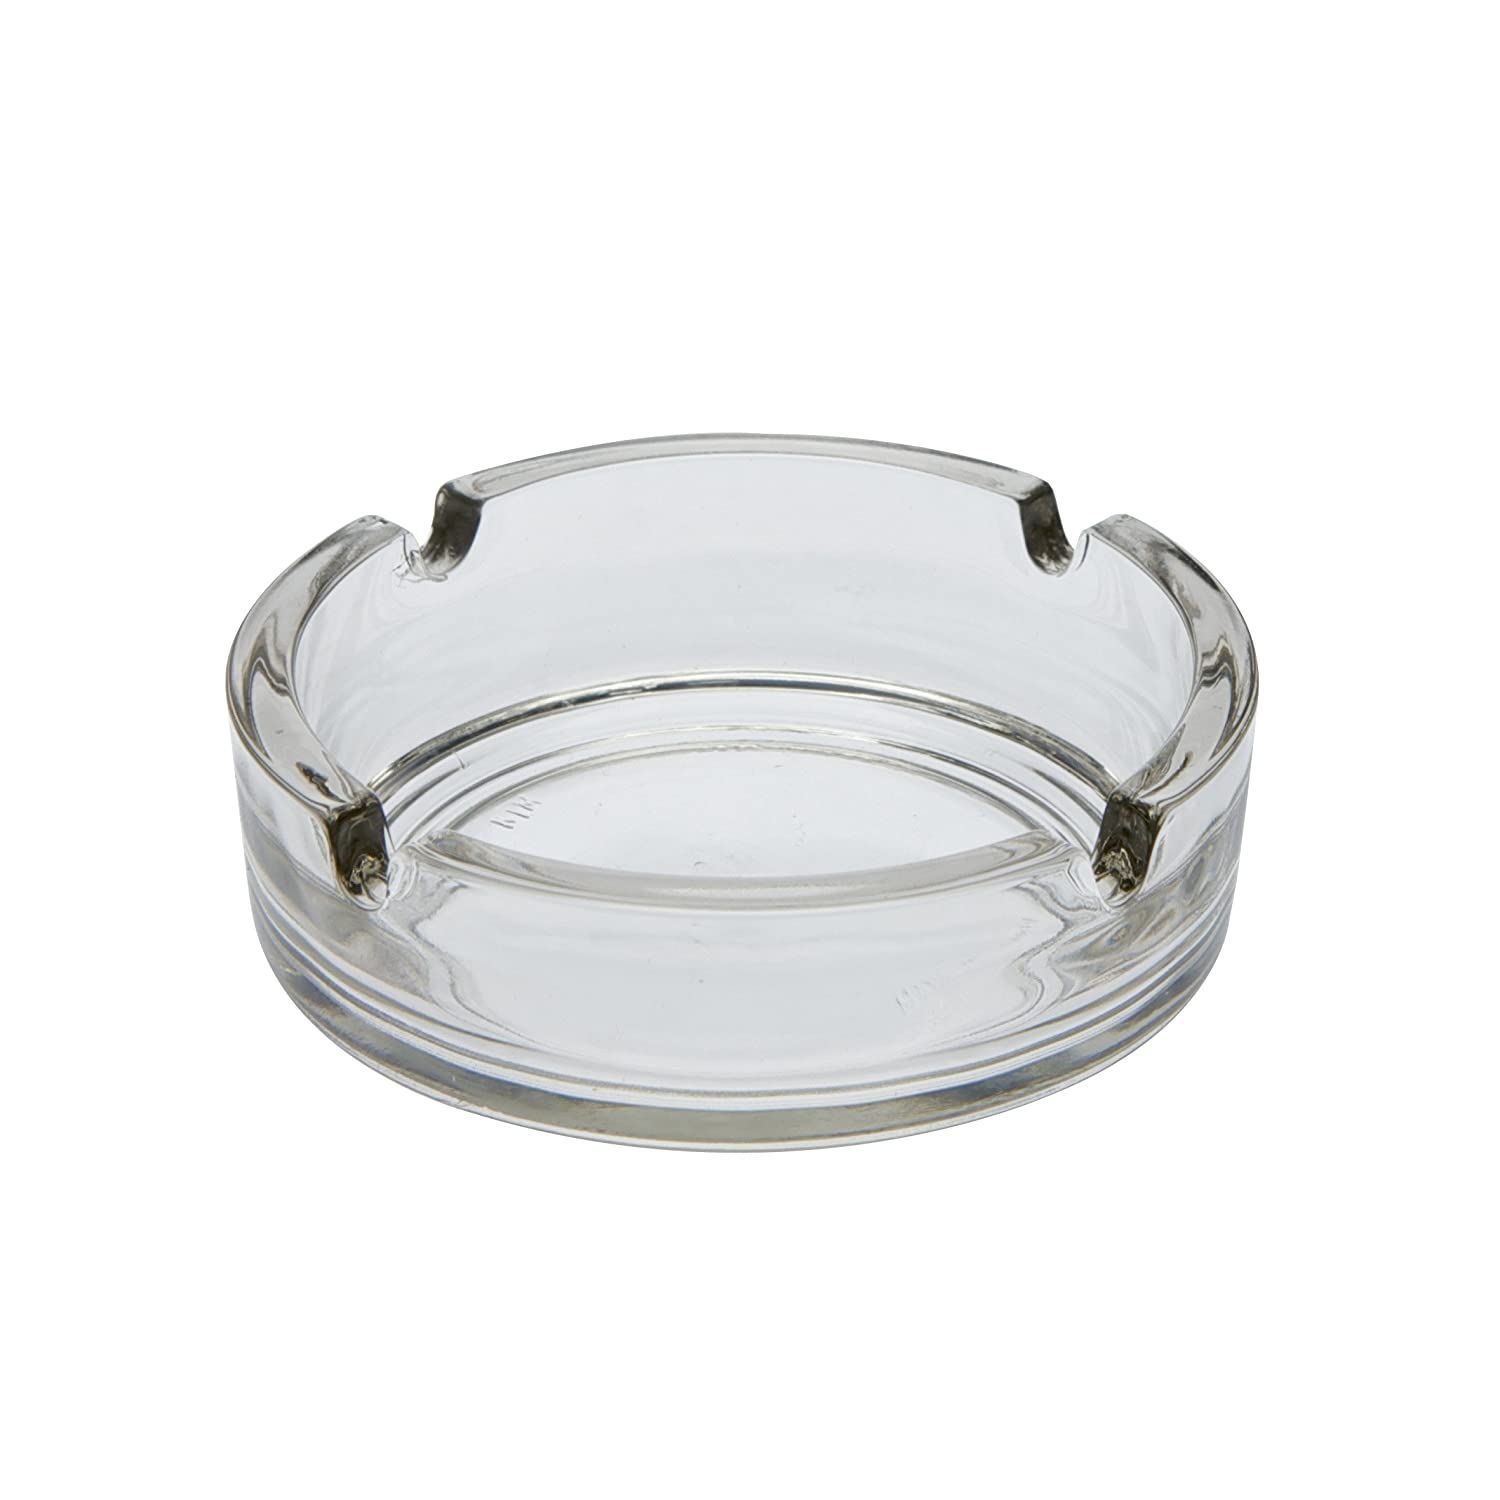 Arcoroc Glass Ashtray, Glass, black, 1 Stück - Ø 8.5cm 55878